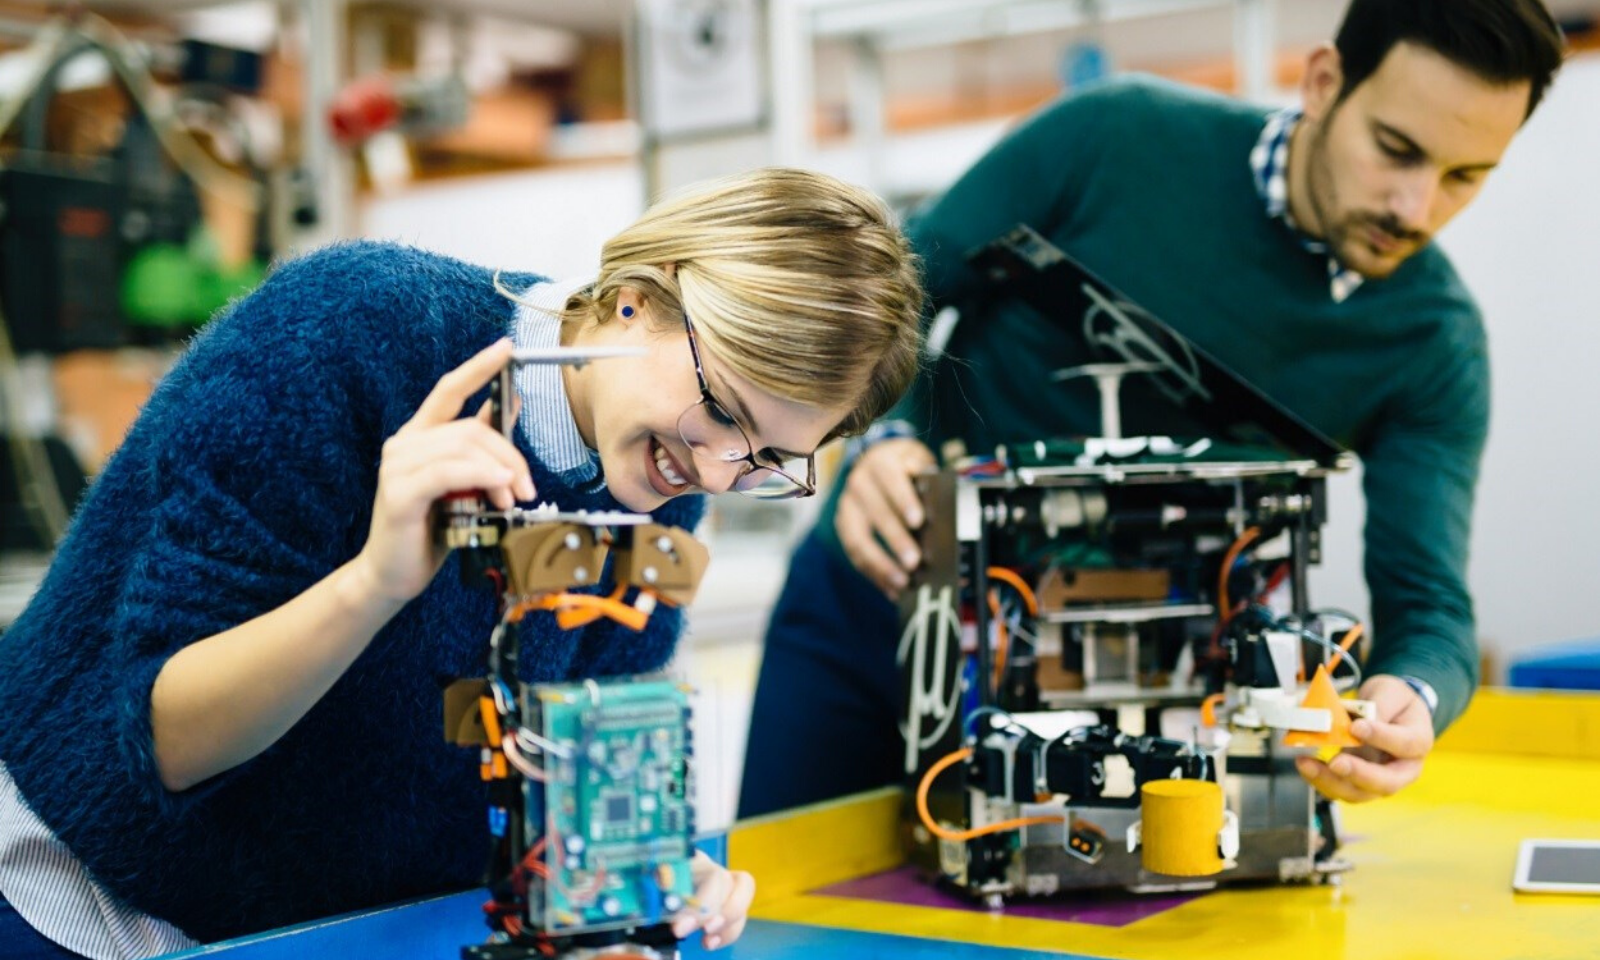 Women and a man working on  circuit boards.